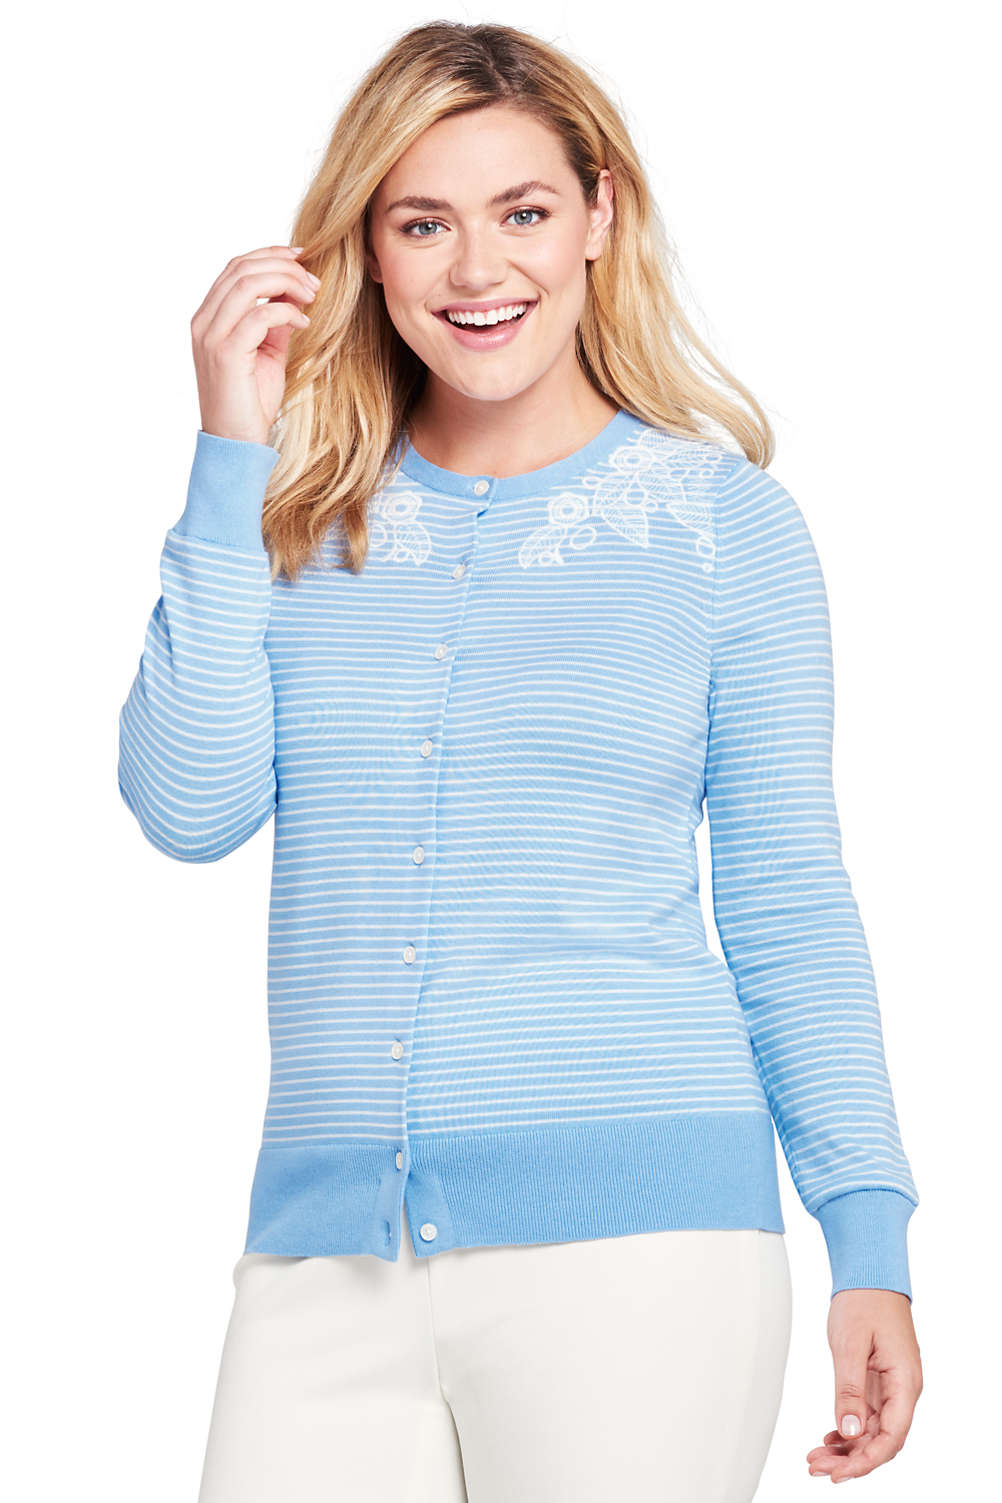 1778f21009c Women s Plus Size Supima Cotton Embroidered Cardigan Sweater from Lands  End